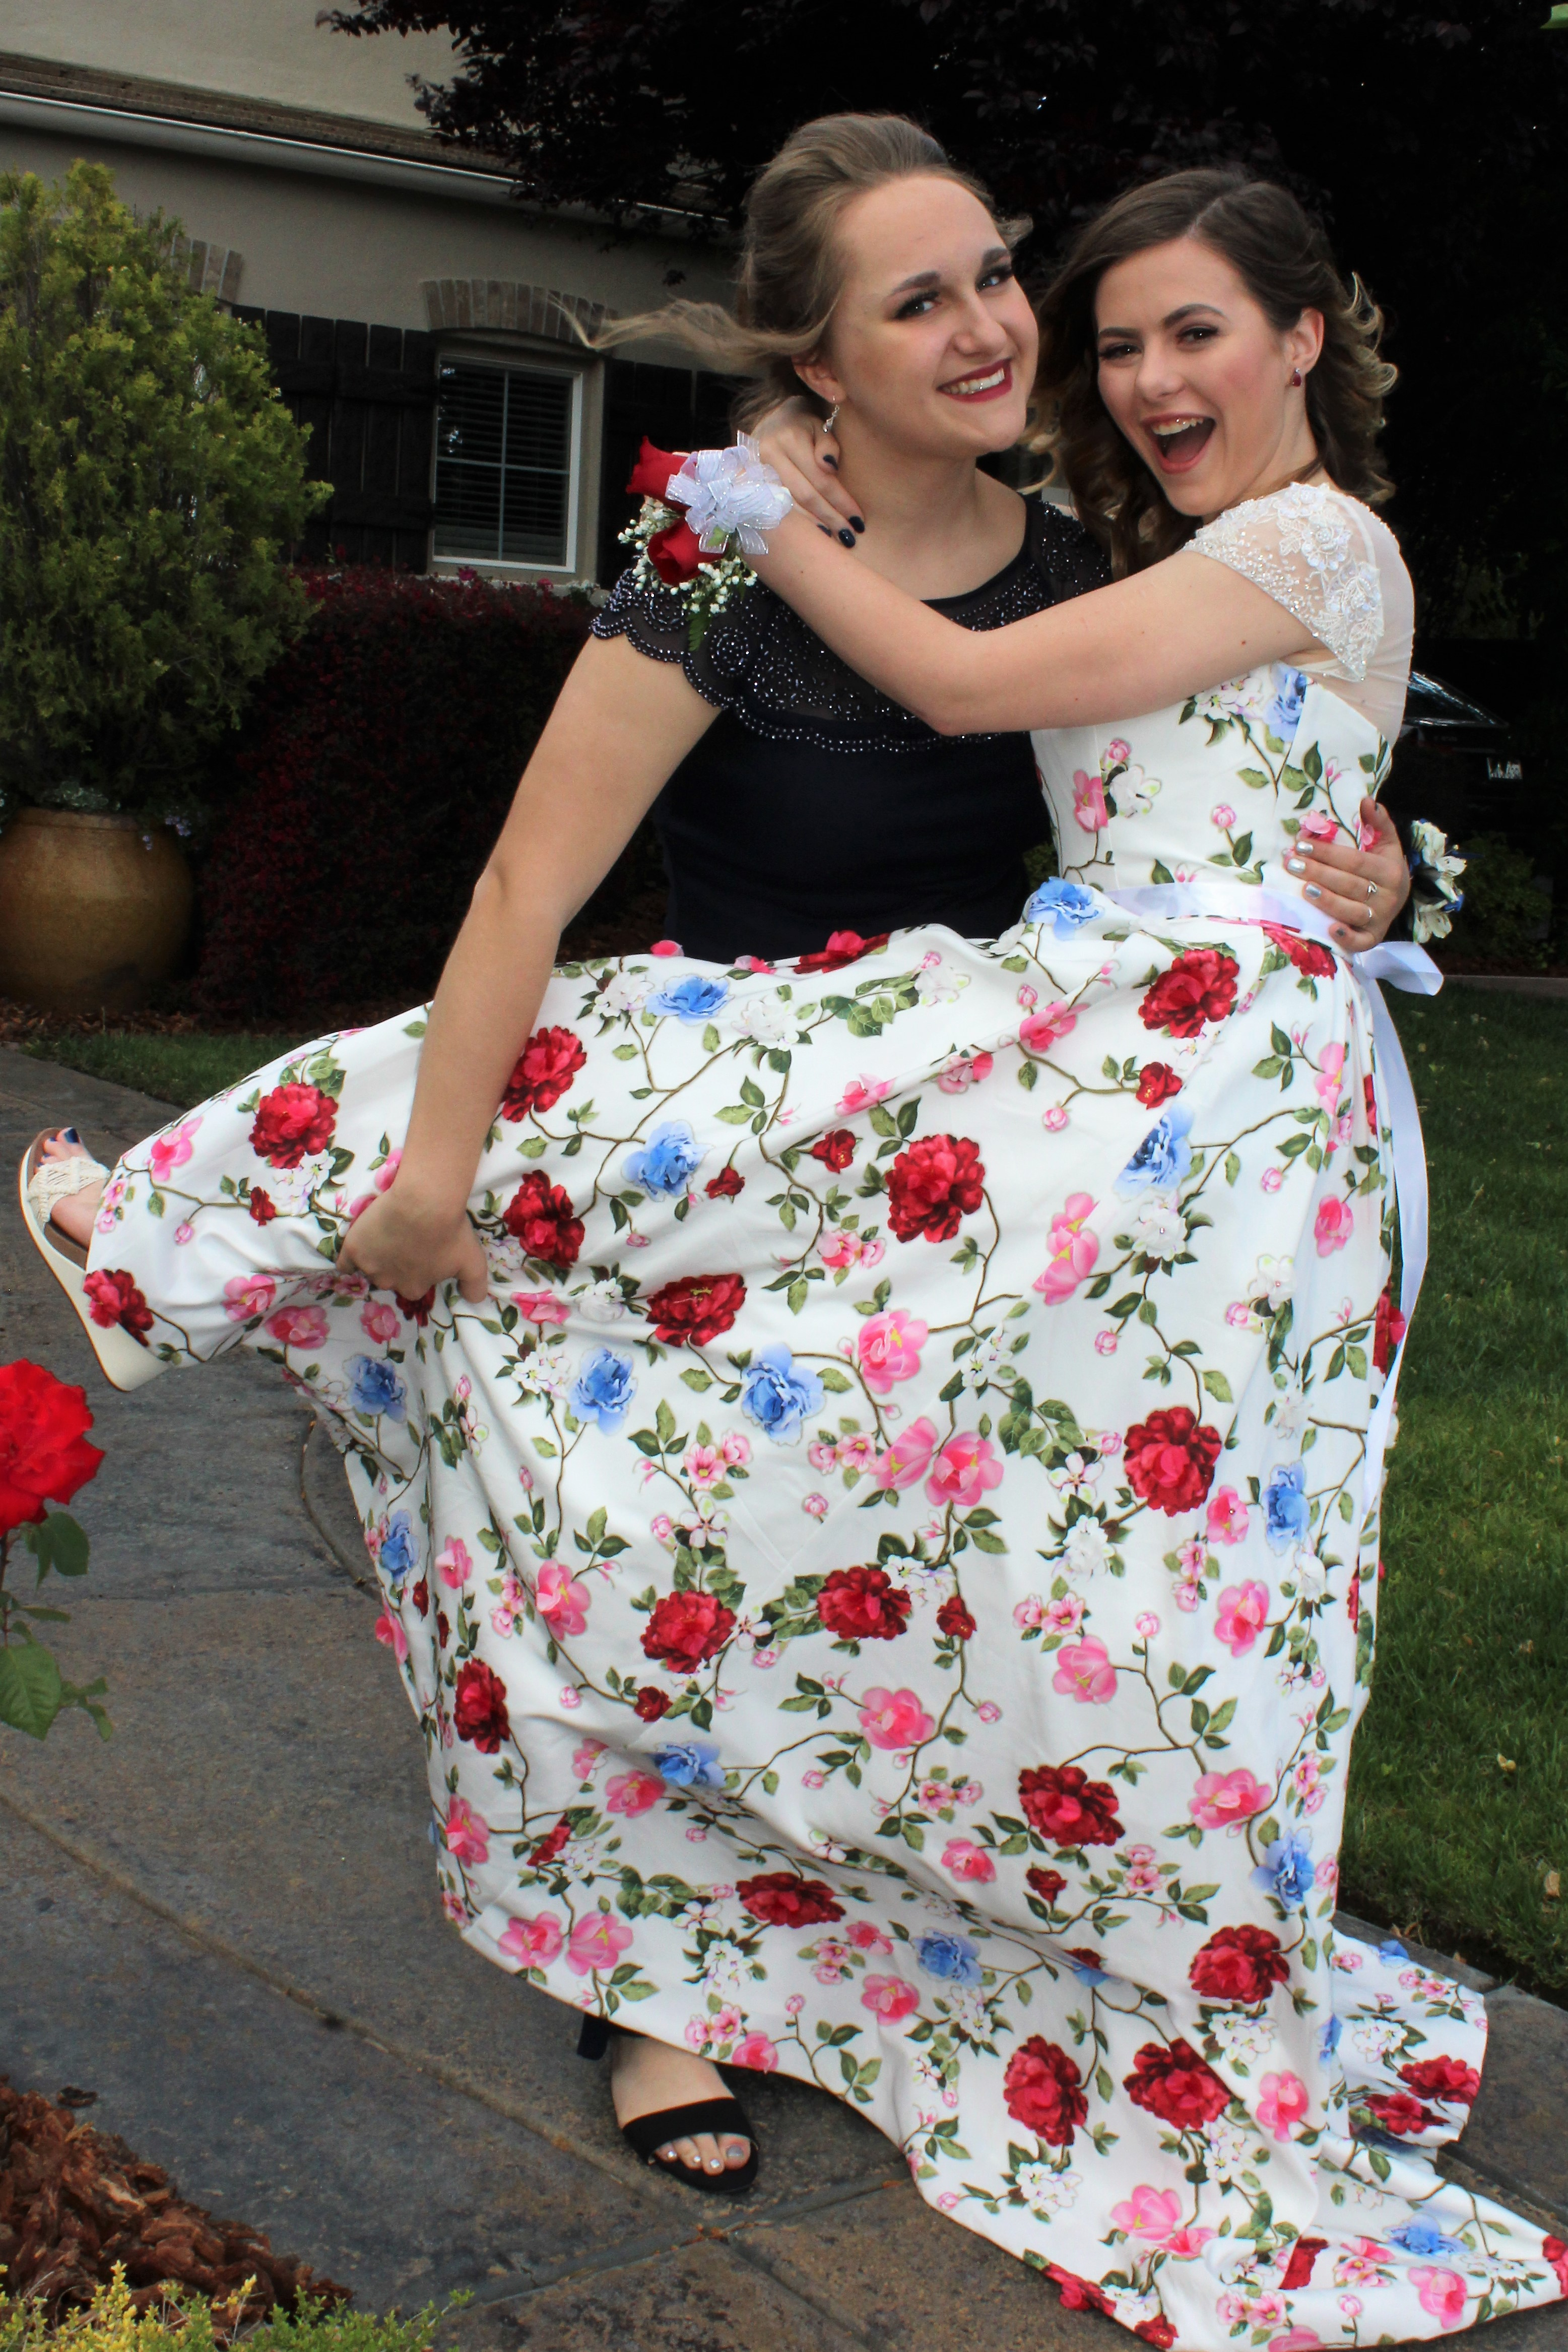 The writer and her friend posing in their prom dresses.